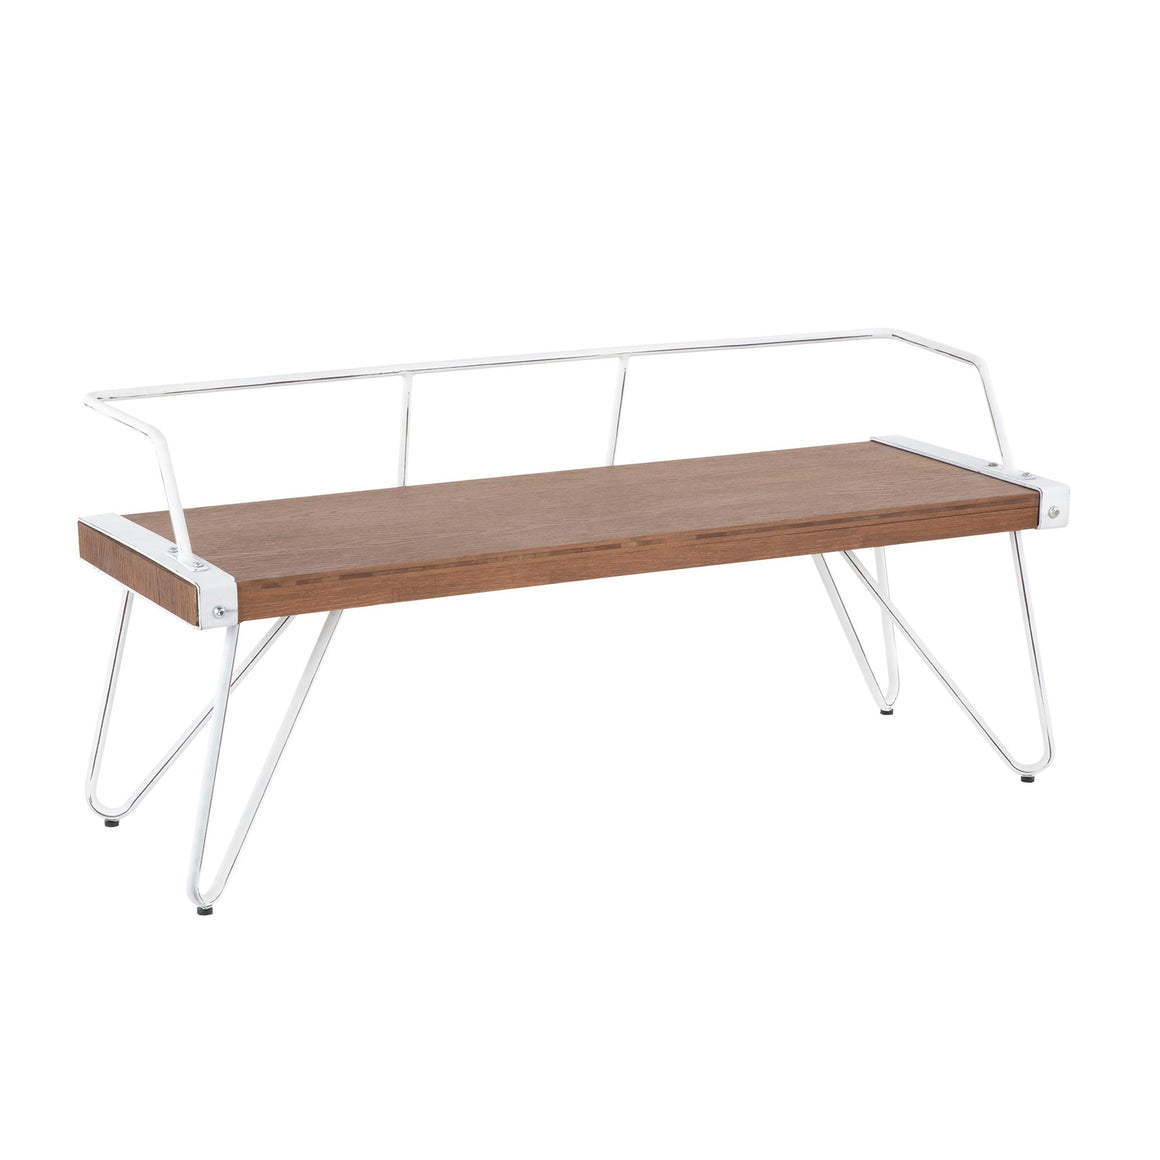 Stefani Industrial Bench in Vintage White Metal and Brown Wood-pressed Grain Bamboo by LumiSource